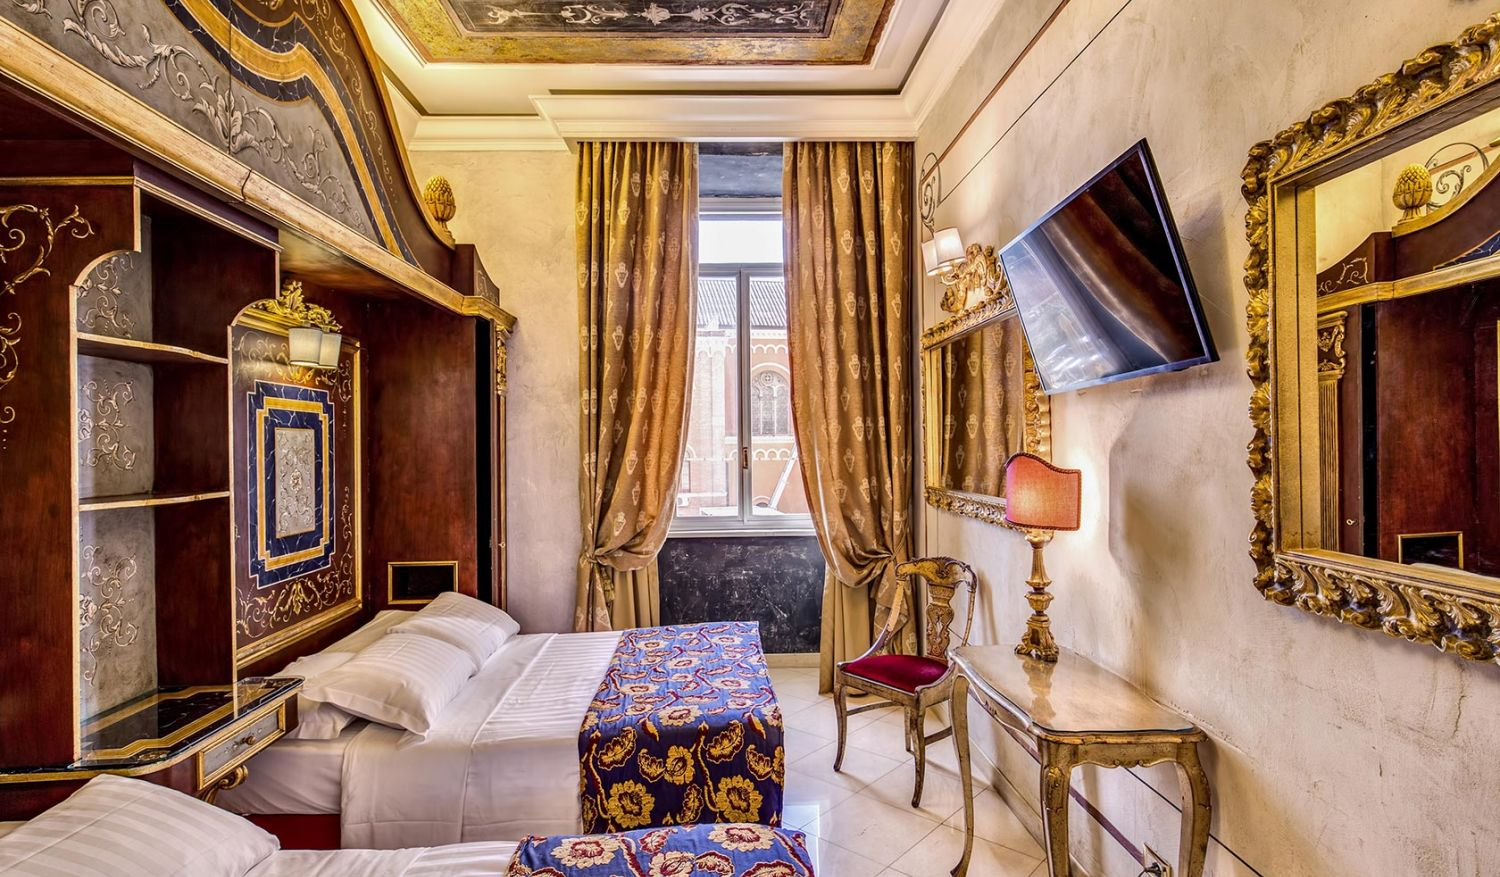 Rooms for holidays with friends in Rome